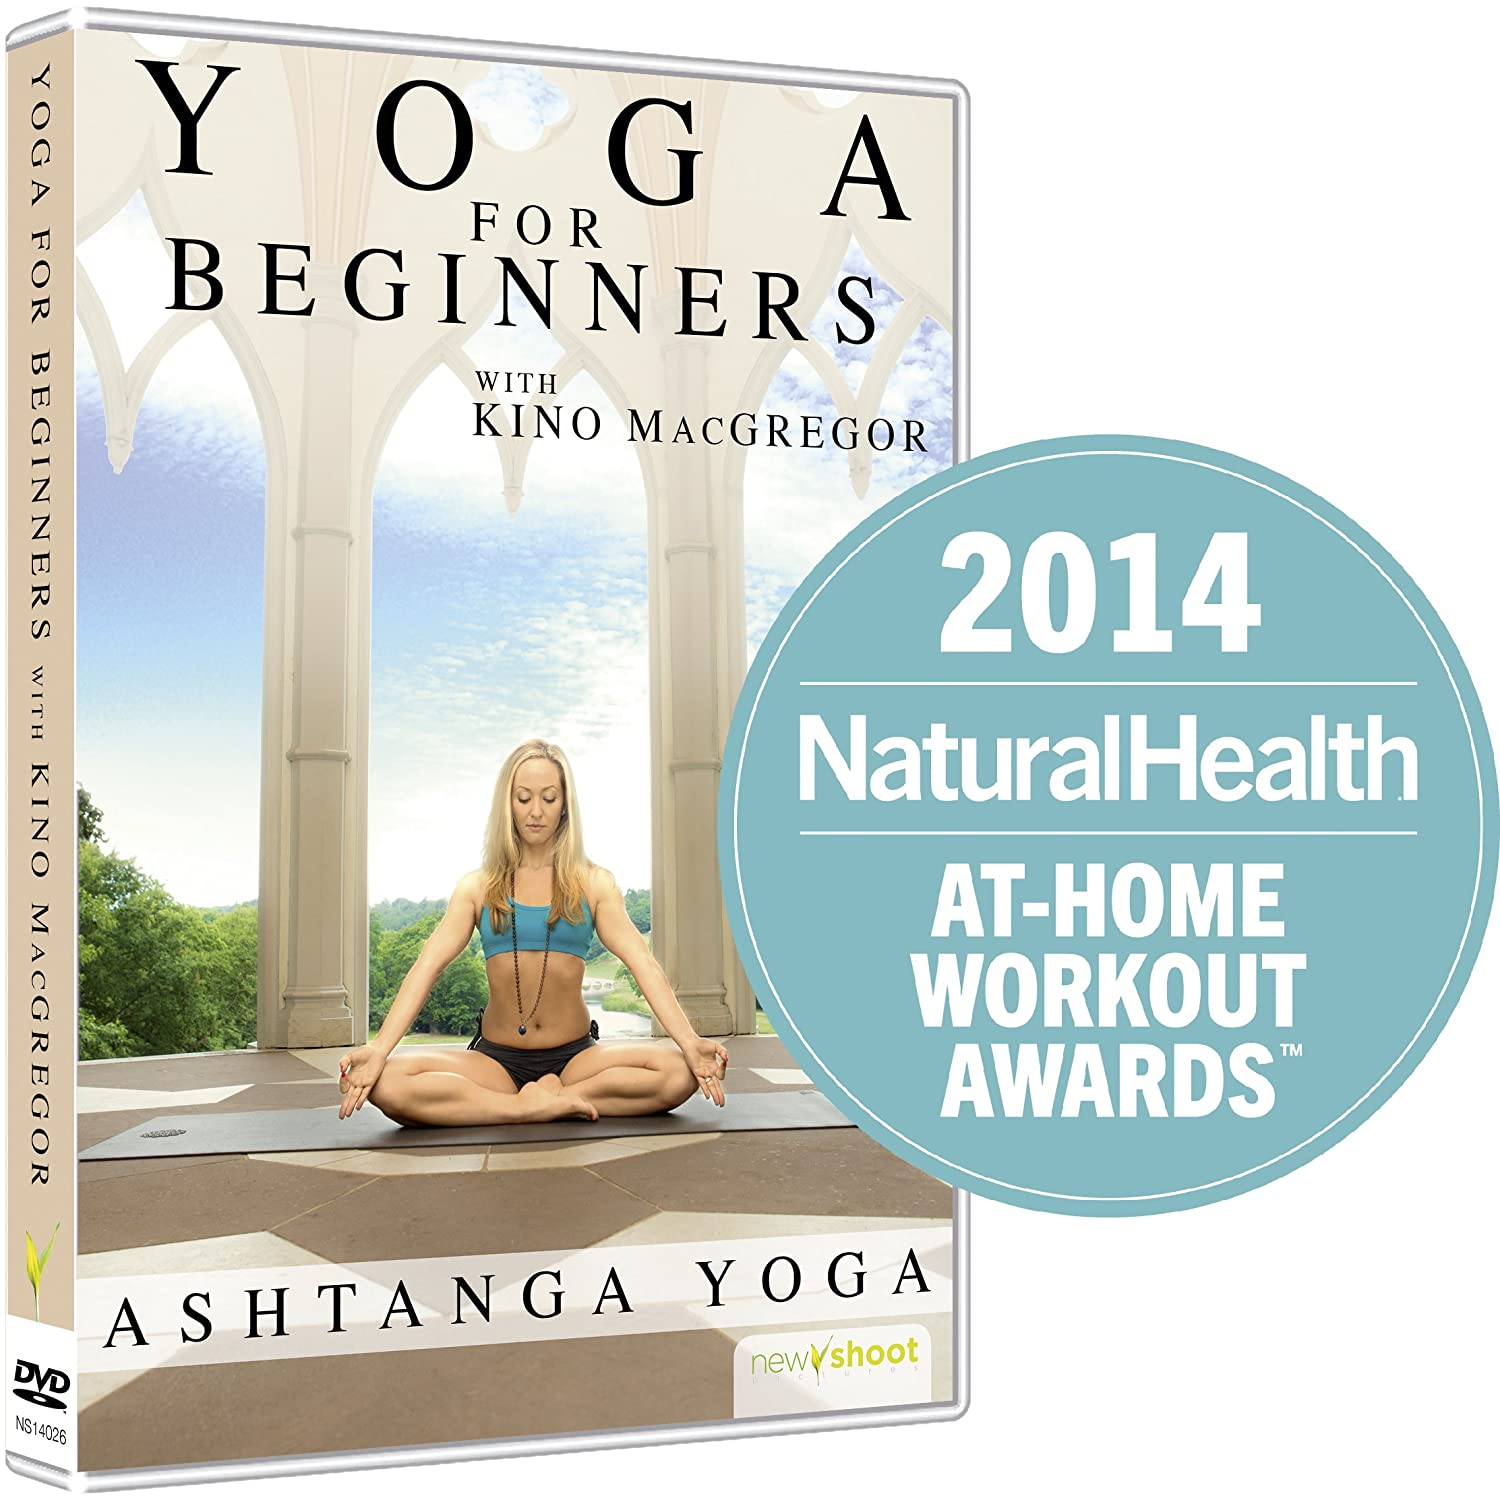 Yguide yoga software with ashtanga yoga great poses ideas